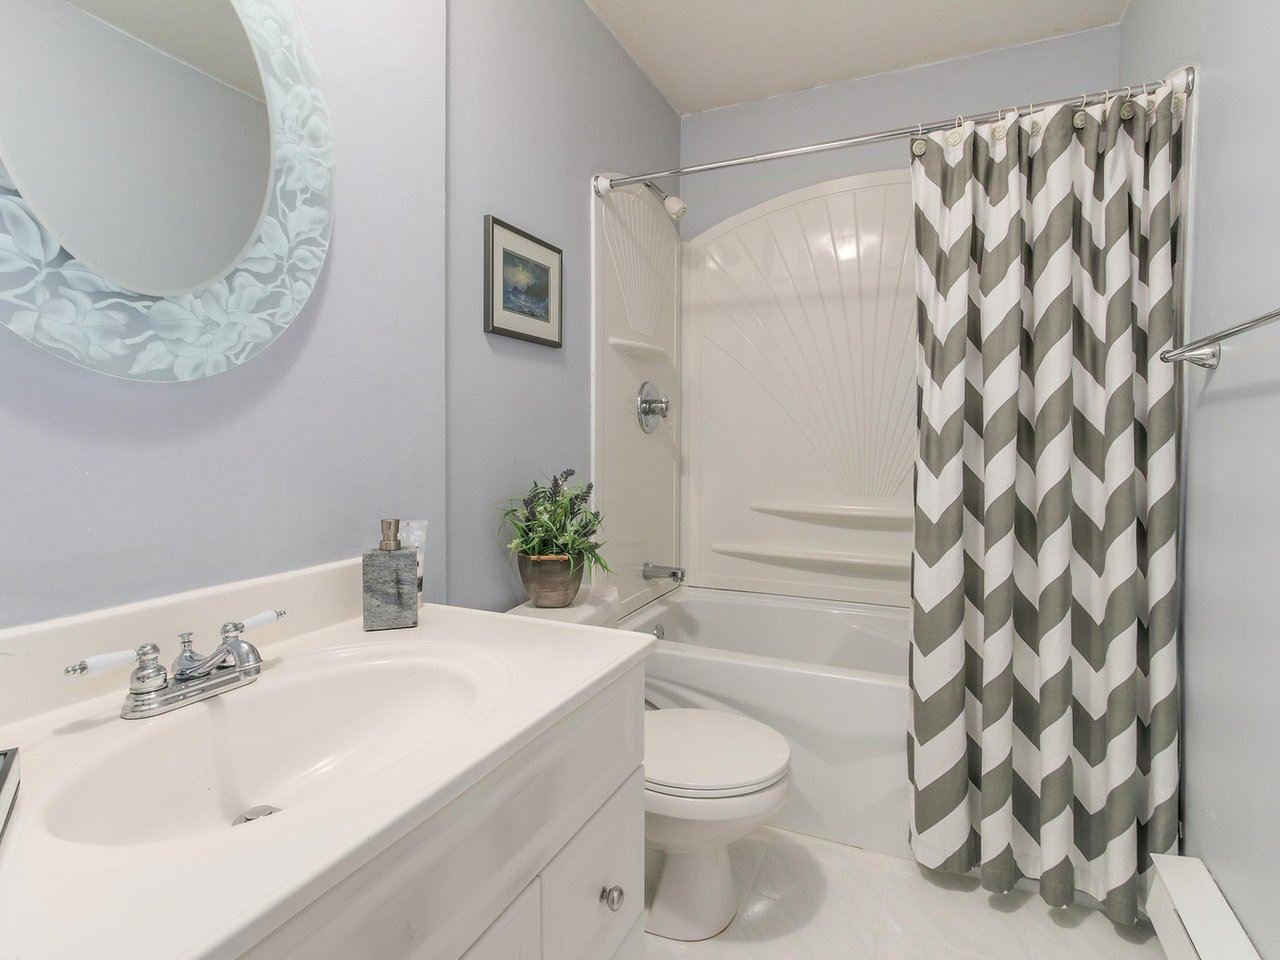 """Photo 11: Photos: 10550 HOLLYMOUNT Drive in Richmond: Steveston North House for sale in """"HOLLIES"""" : MLS®# R2366603"""